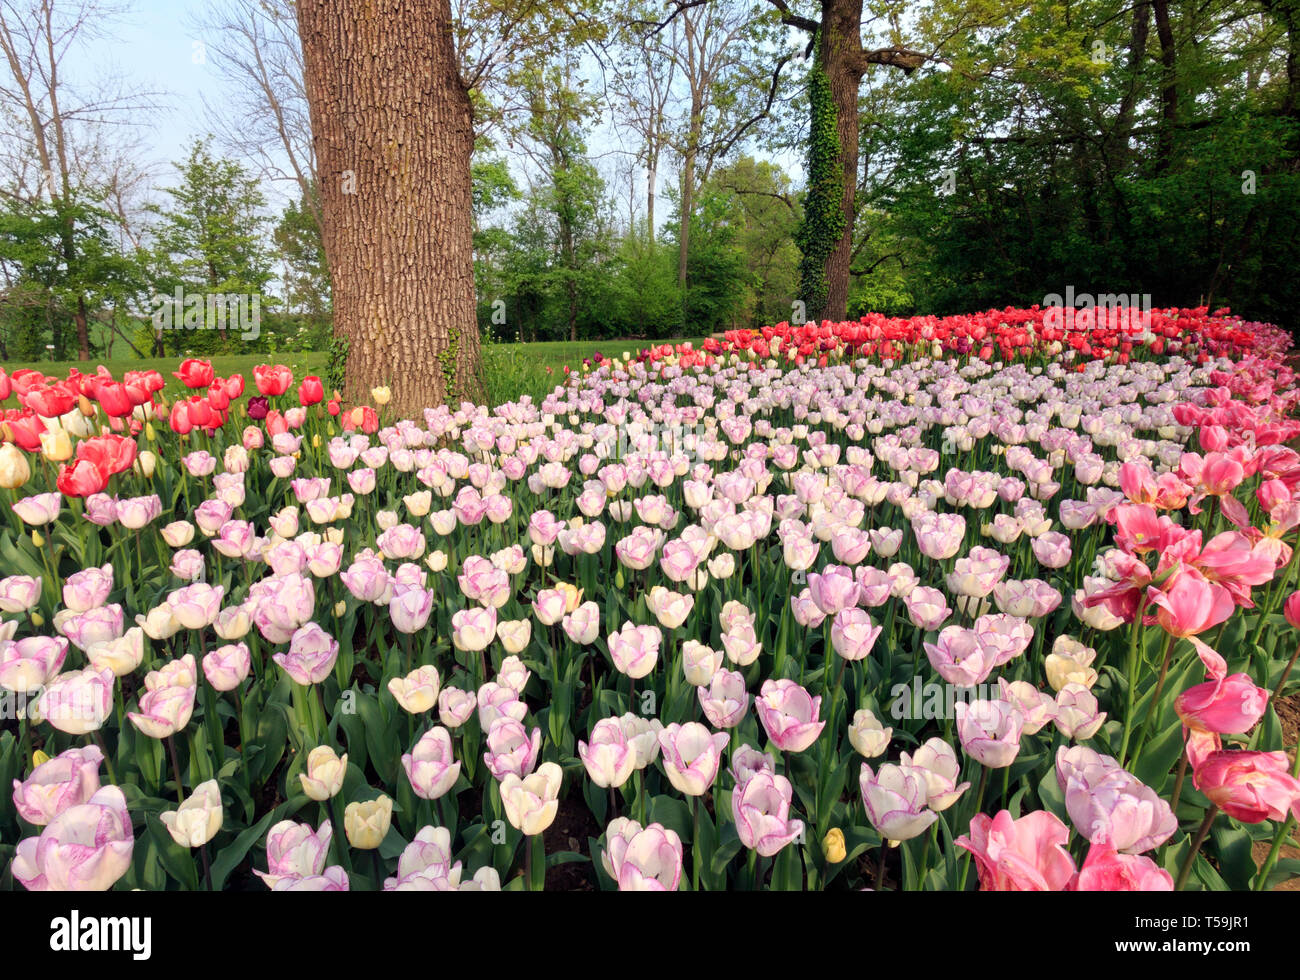 A wonderful flowerbed of white and pink tulip flowers in the Castle of Pralormo nearby Turin, Italy, where every year in April the Exhibition of Messe - Stock Image